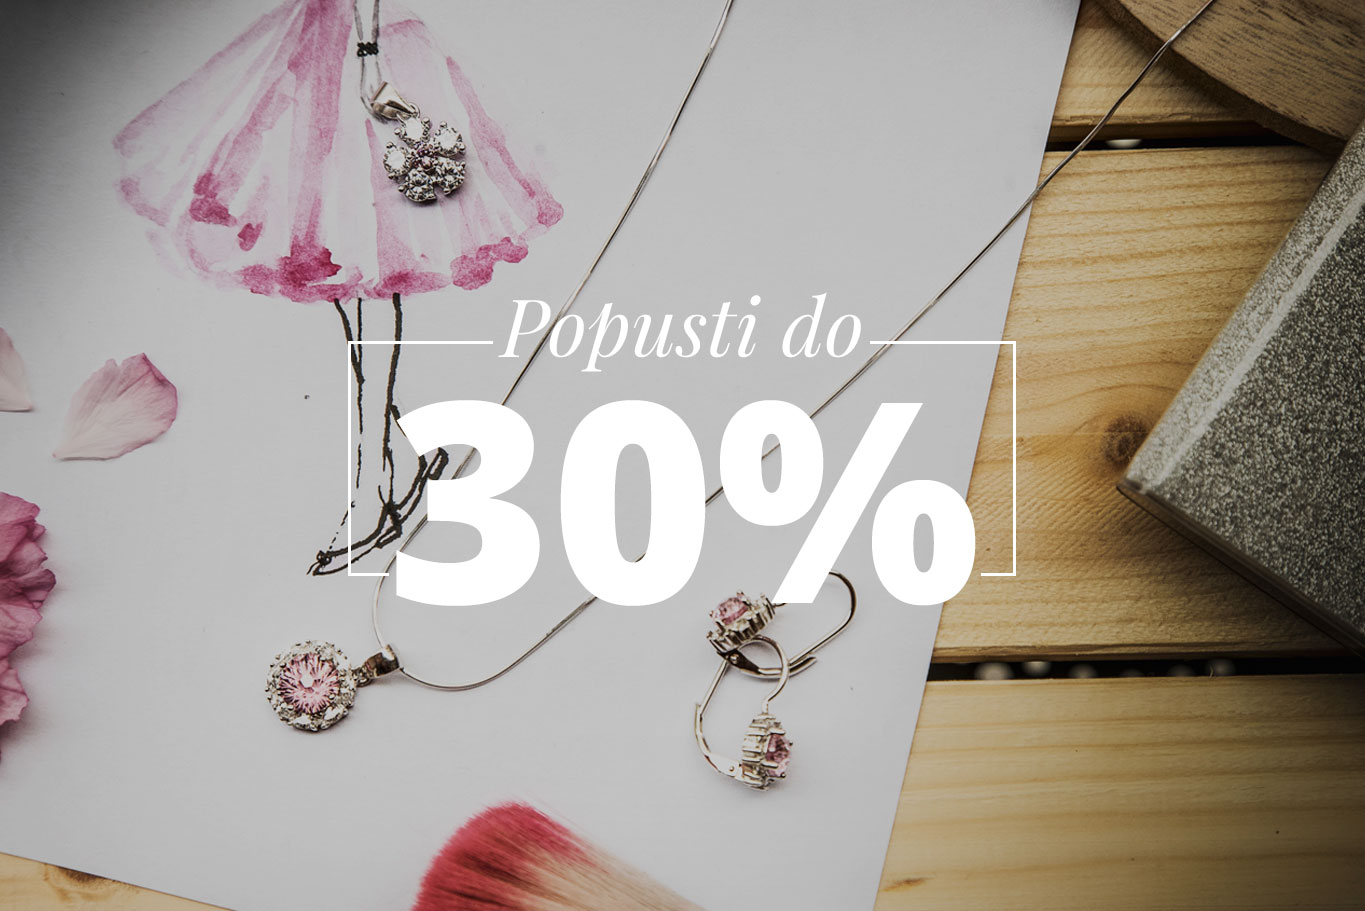 Silver for you popusti do 30